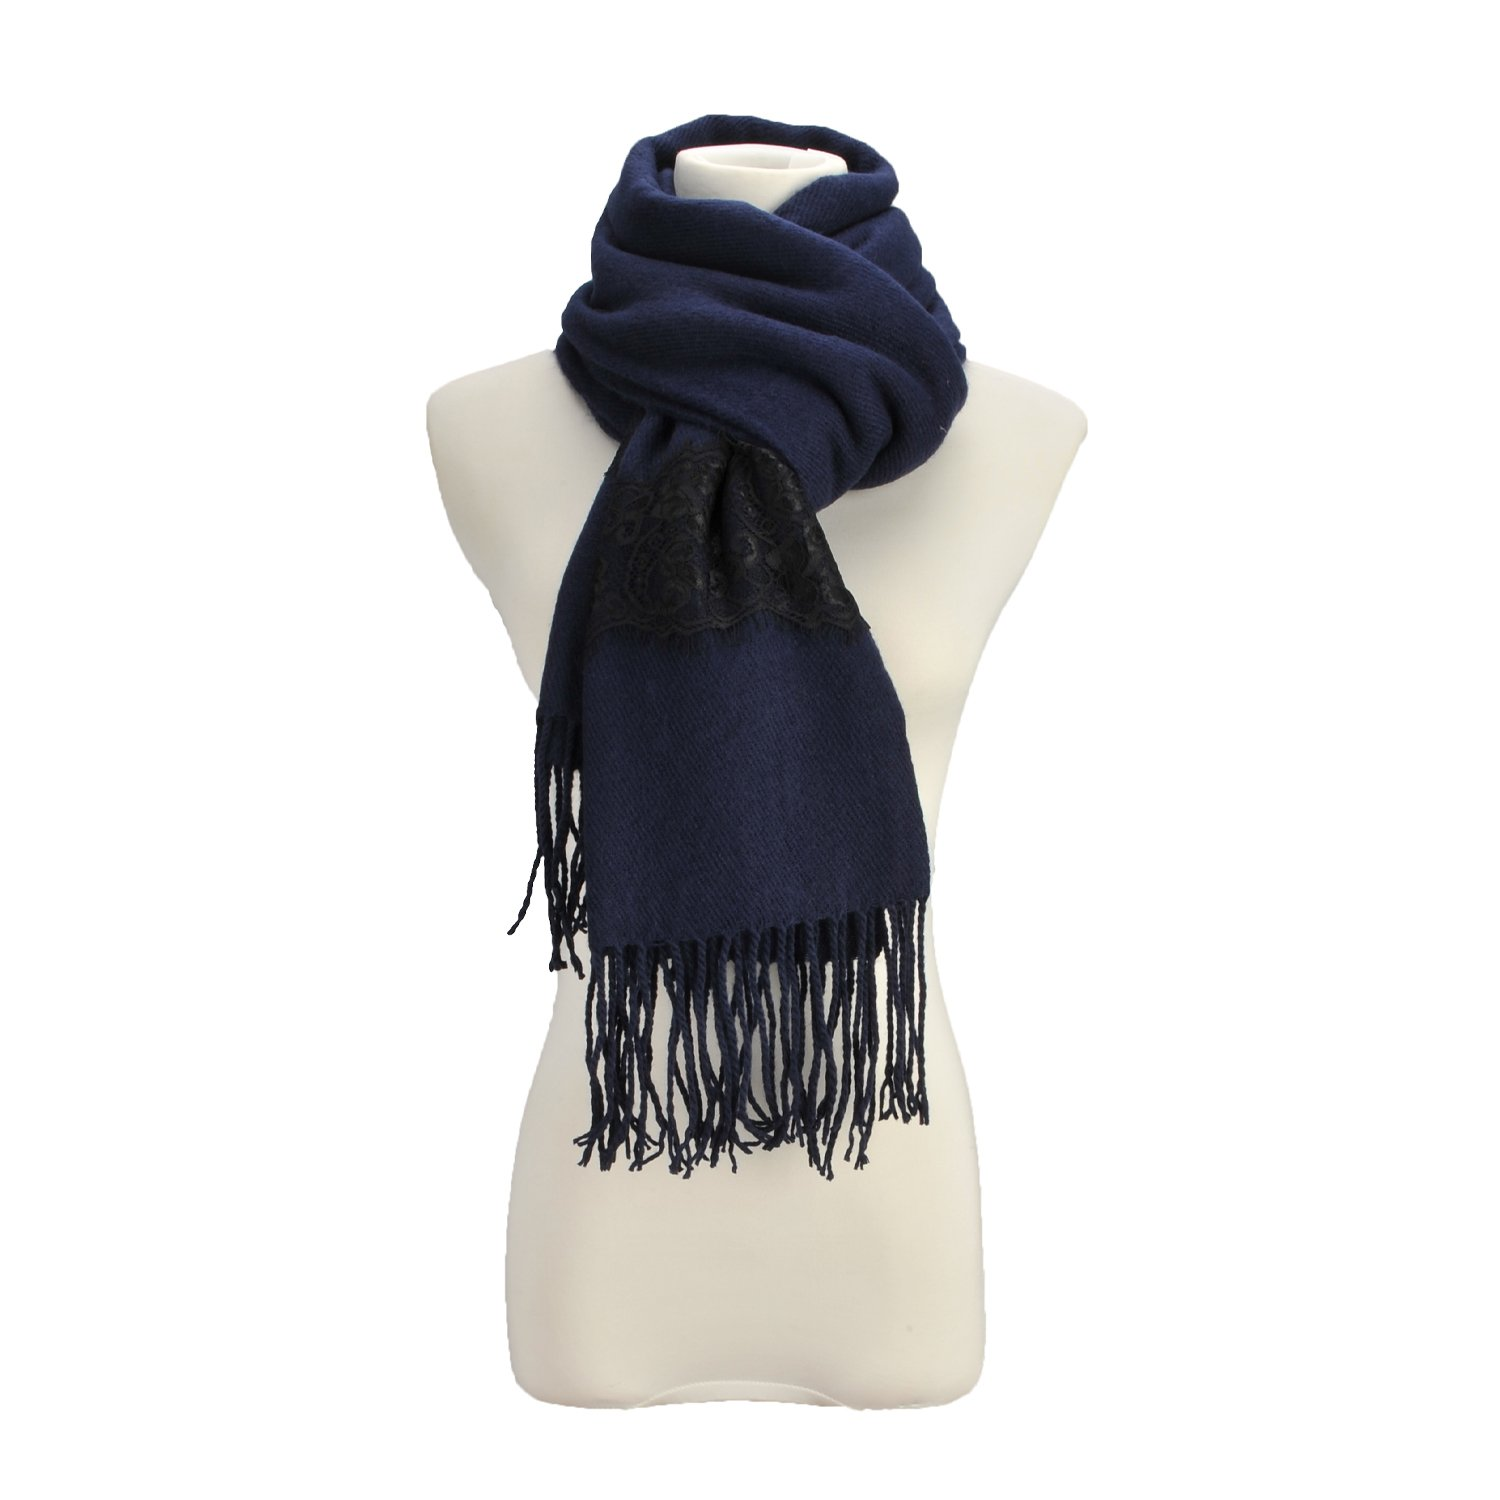 Street Style Large Scarf Loop Wide Cover Up Fringe Top Neckerchief Cold Weather